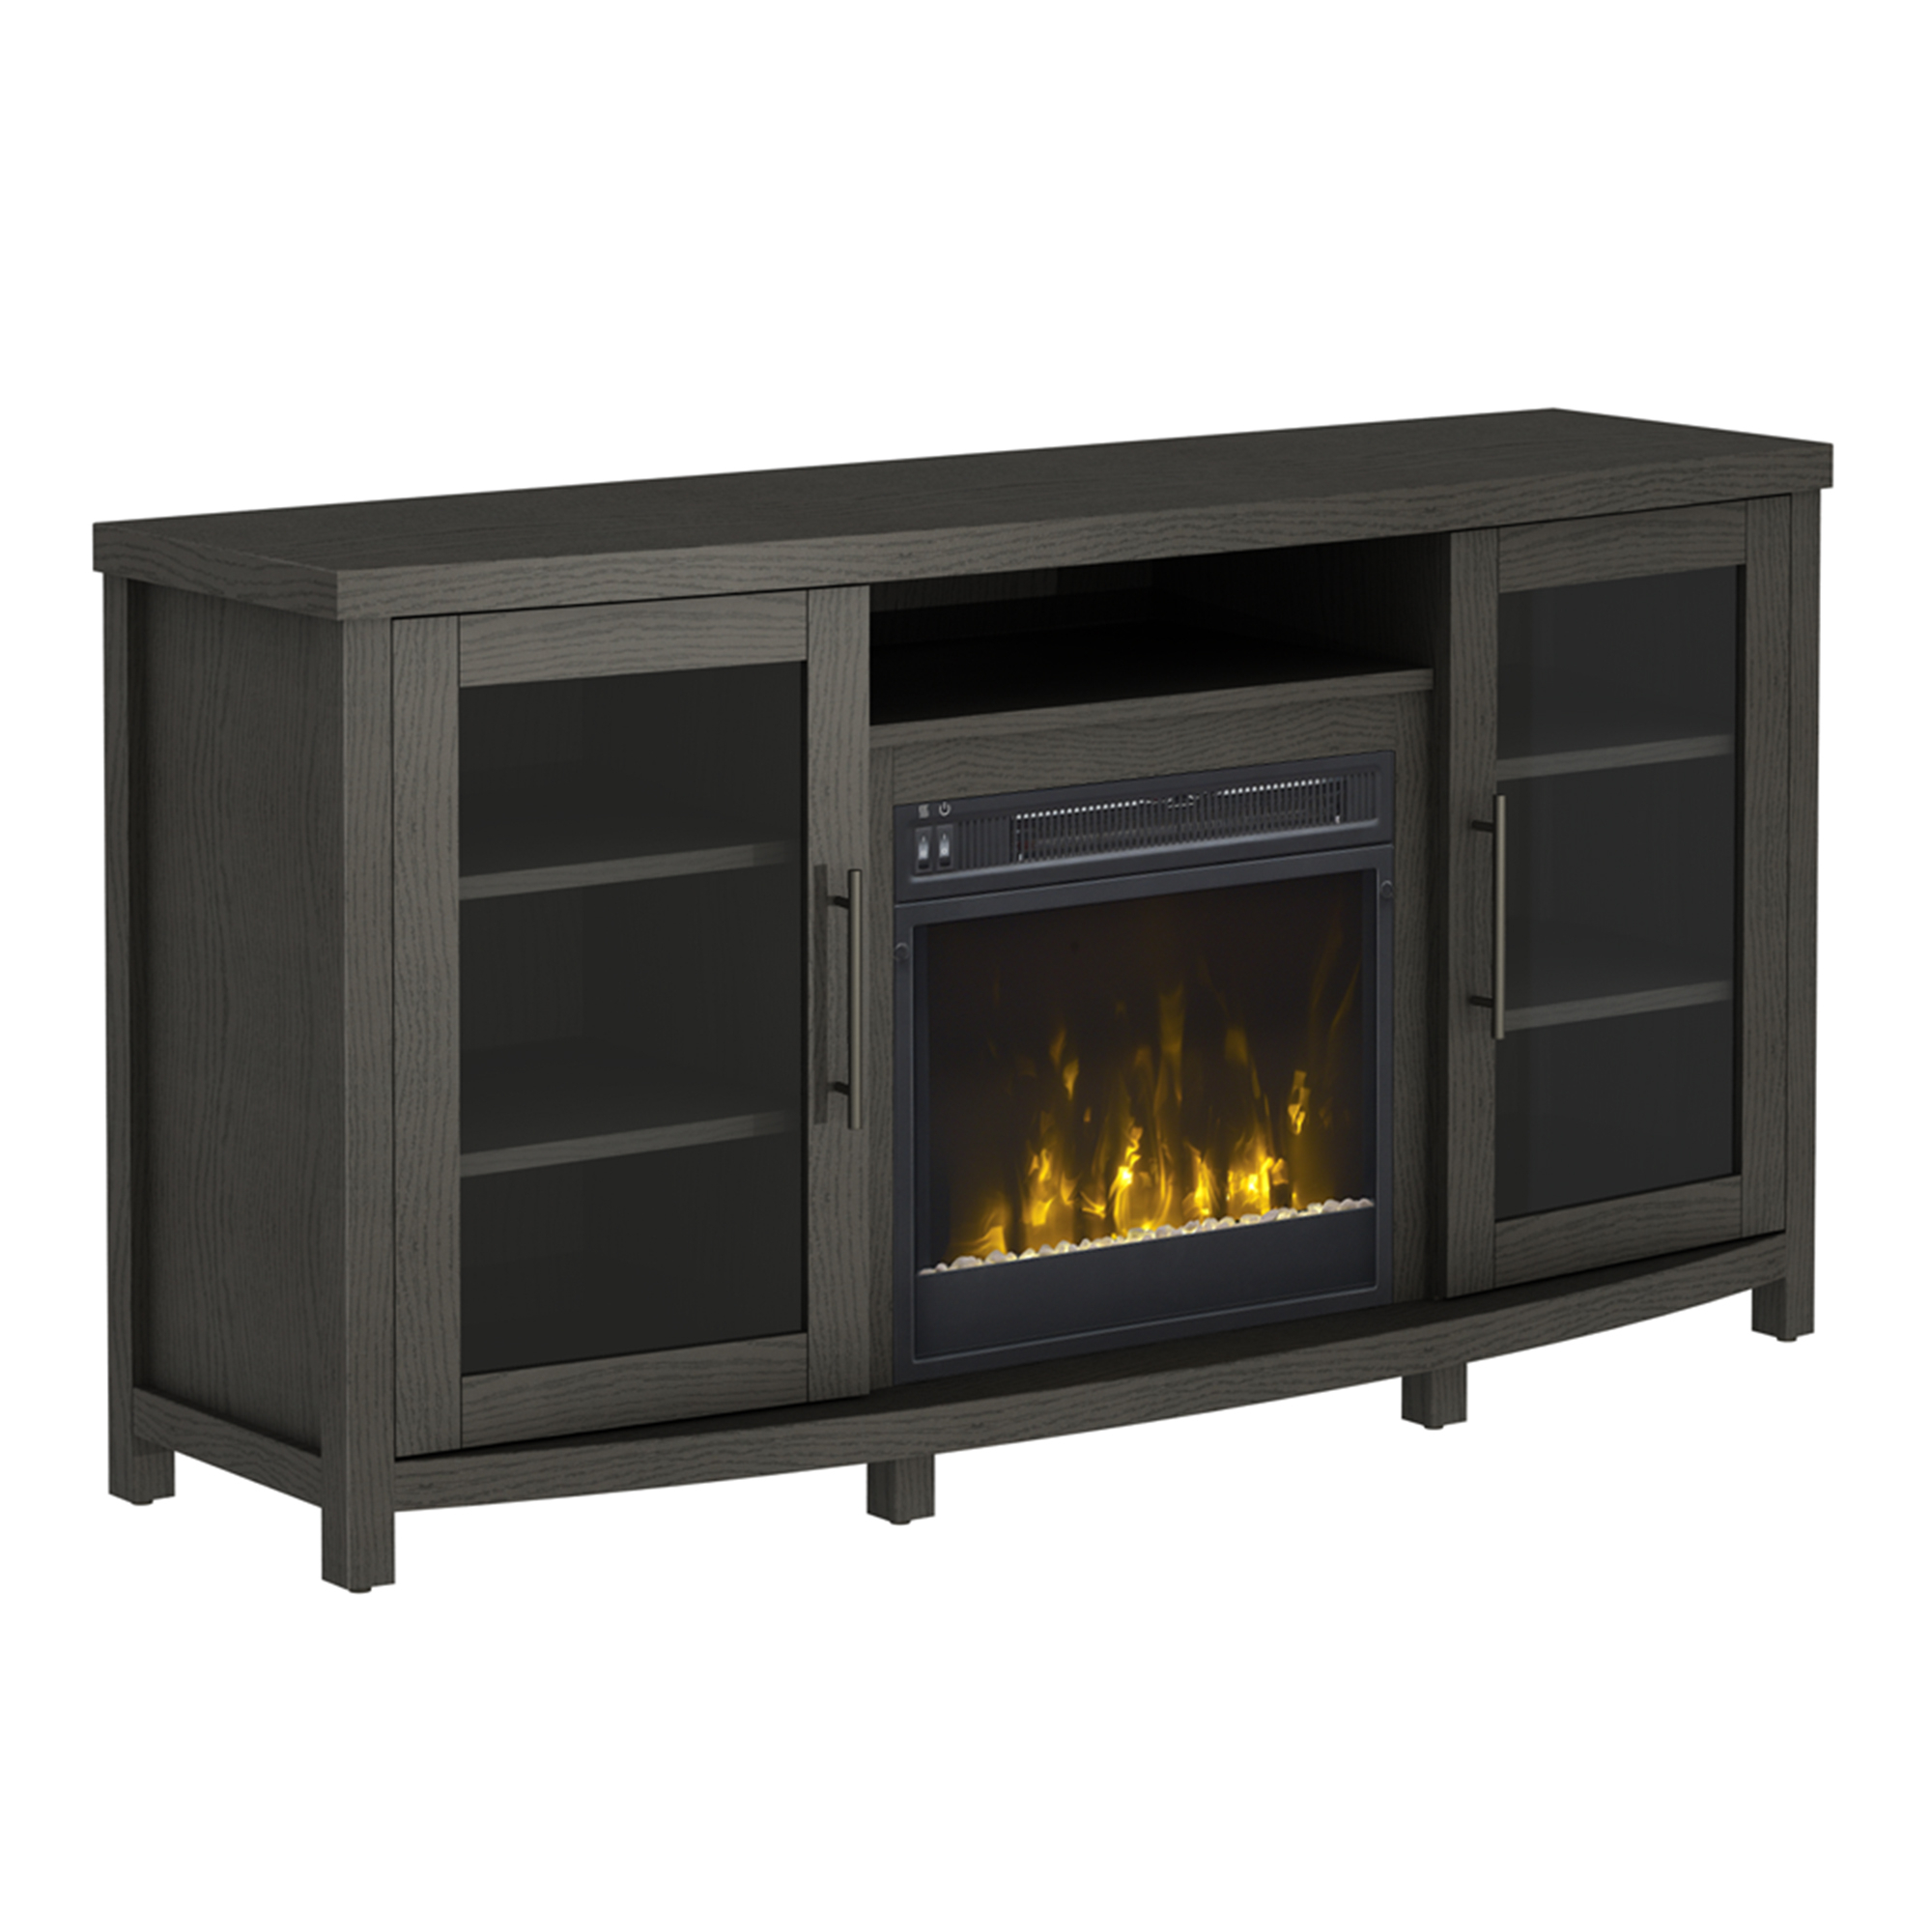 """Most Current Margulies Tv Stands For Tvs Up To 60"""" Intended For Rossville Tv Stand For Tvs Up To 60 With Electric Fireplace (View 8 of 25)"""